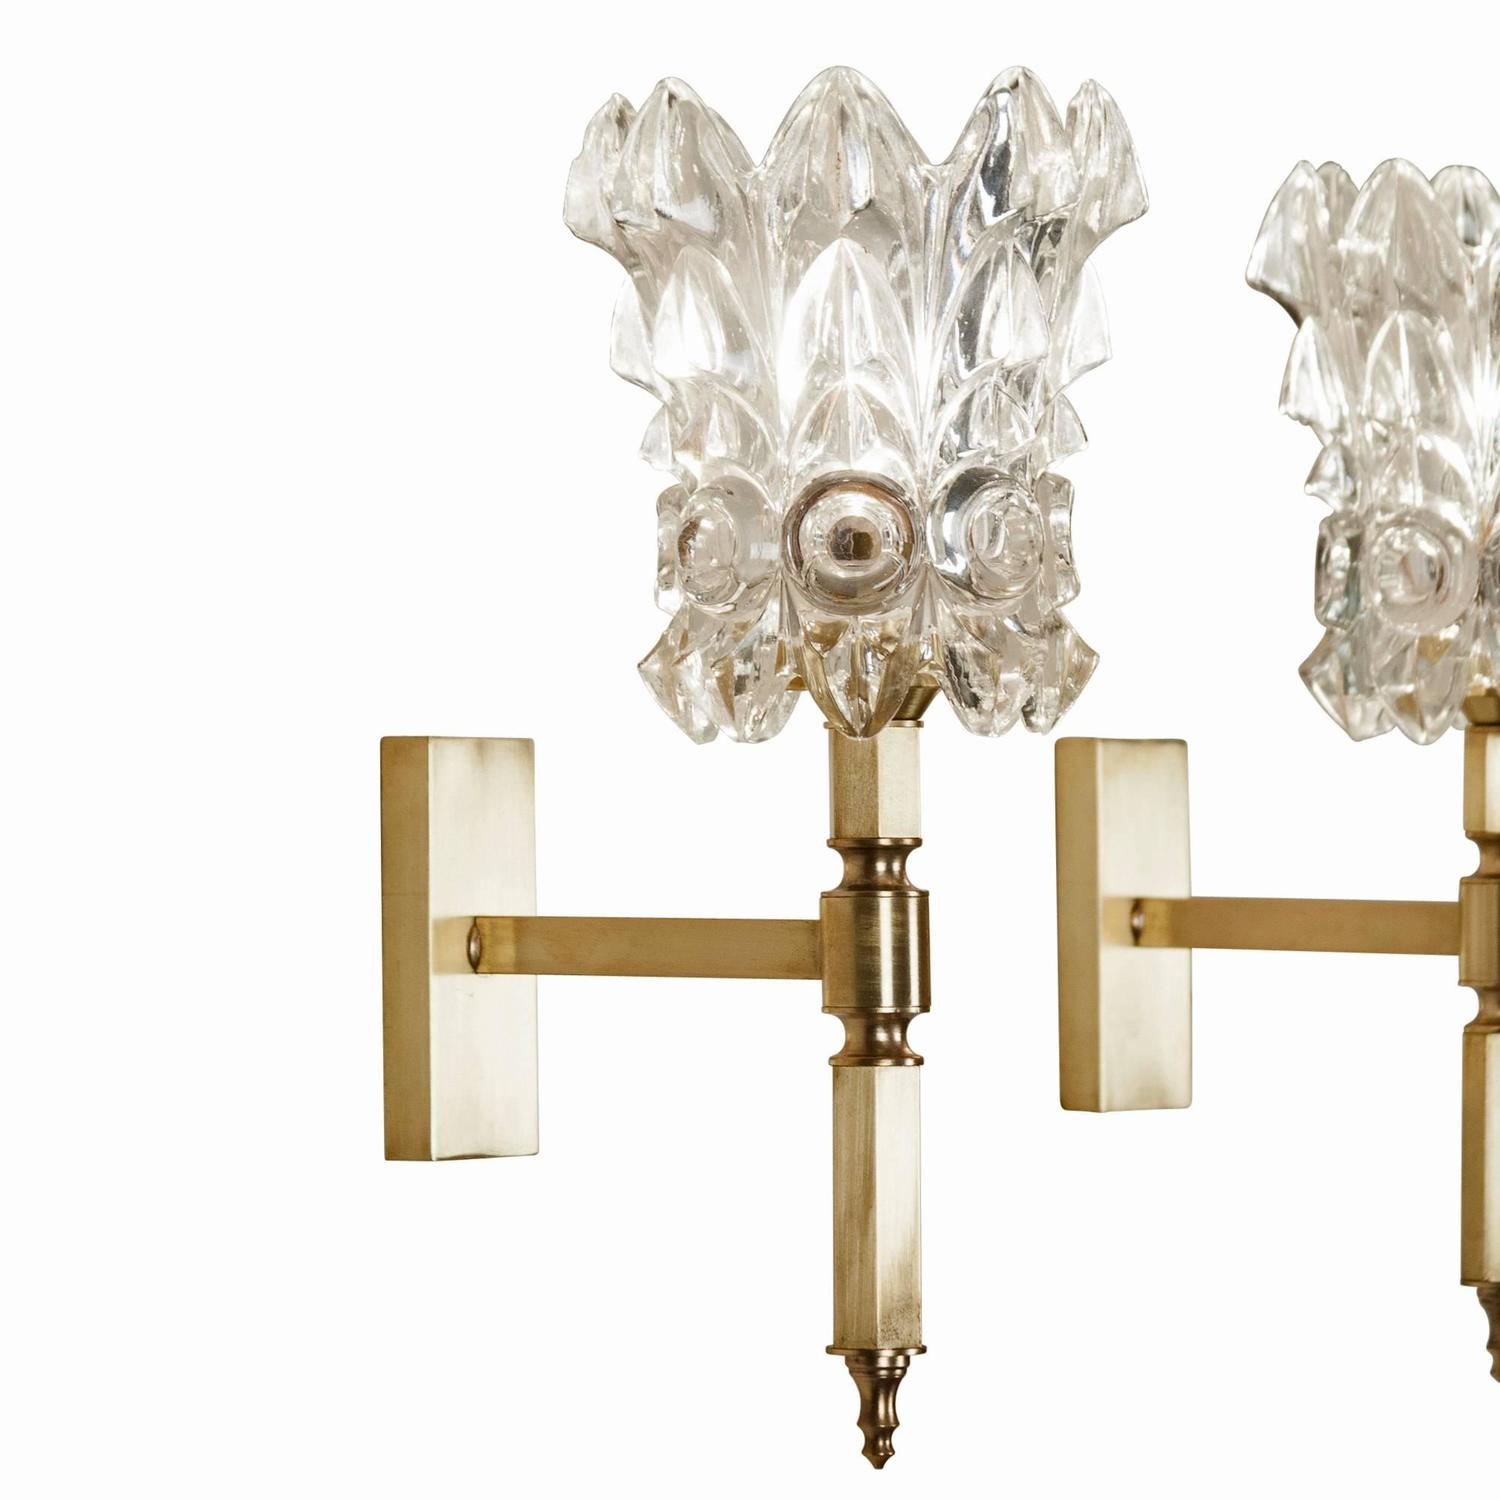 Italian Crystal Wall Sconces : Pair of Faceted Crystal Wall Sconces, Italian 1960s at 1stdibs